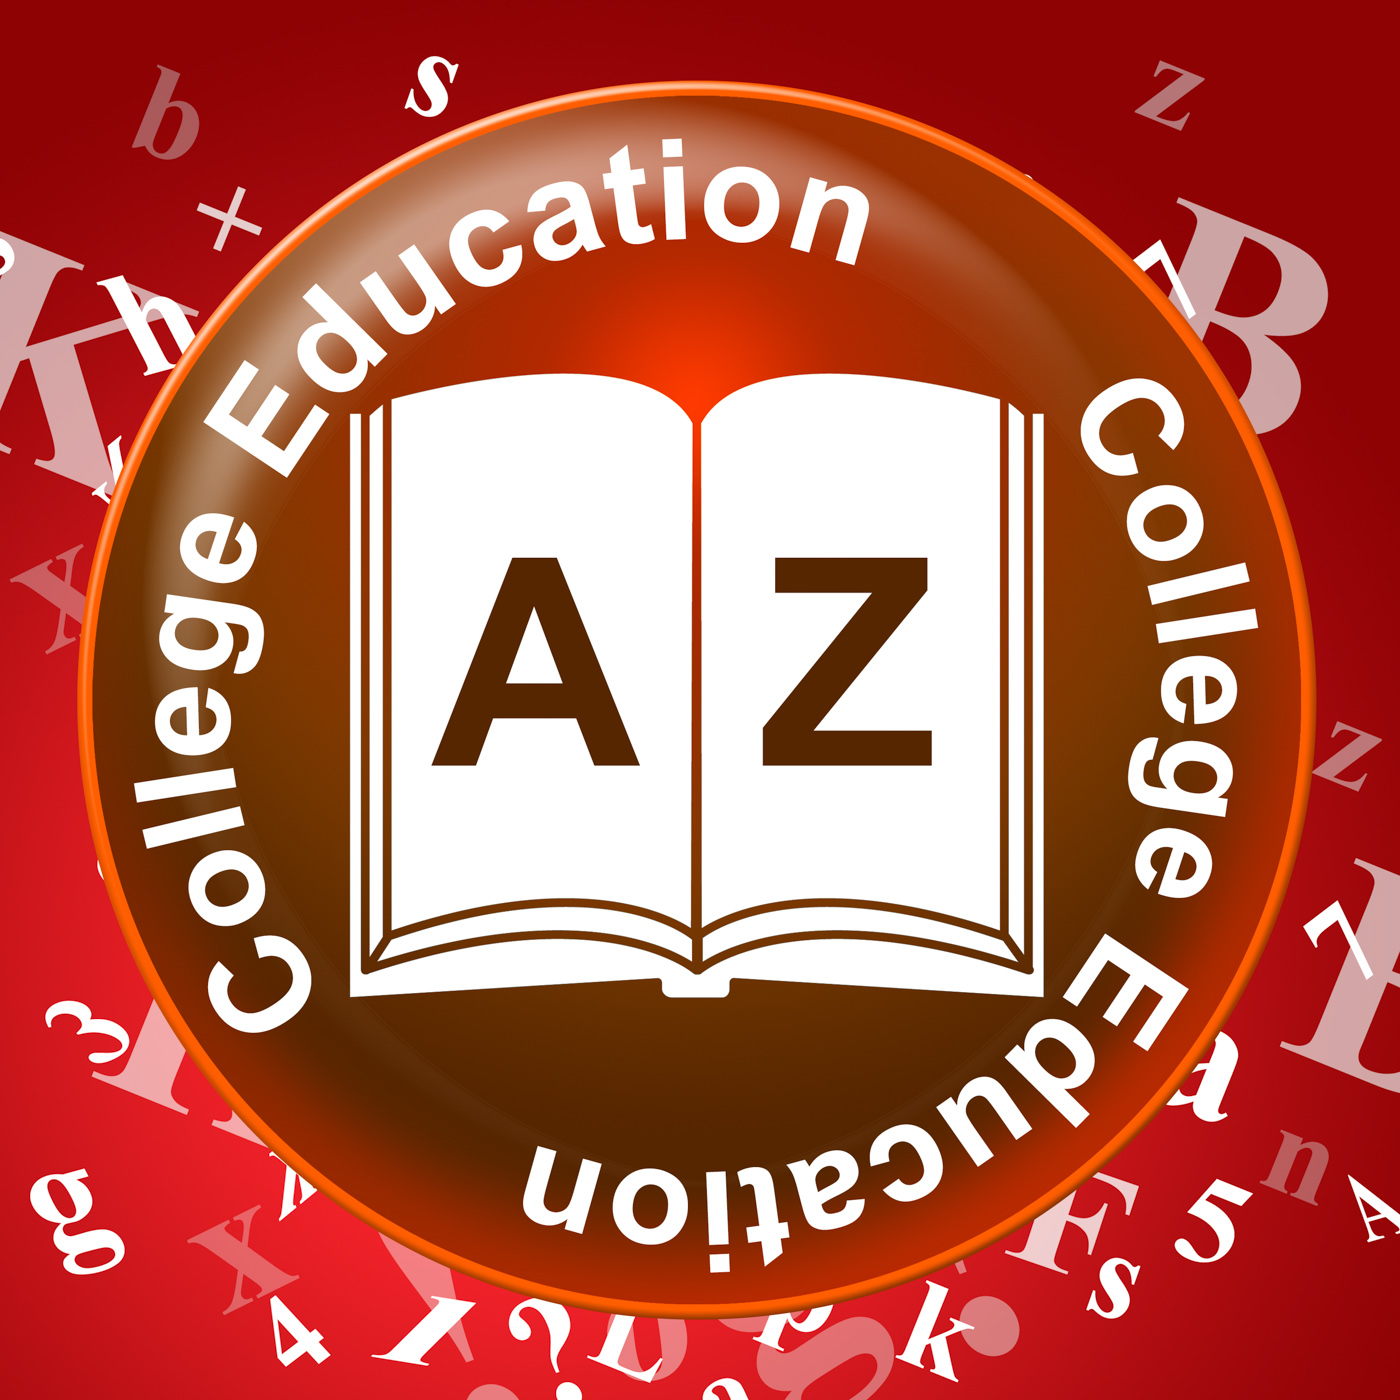 College Education Represents Studying School And Learn, College, School, Universities, Tutoring, HQ Photo